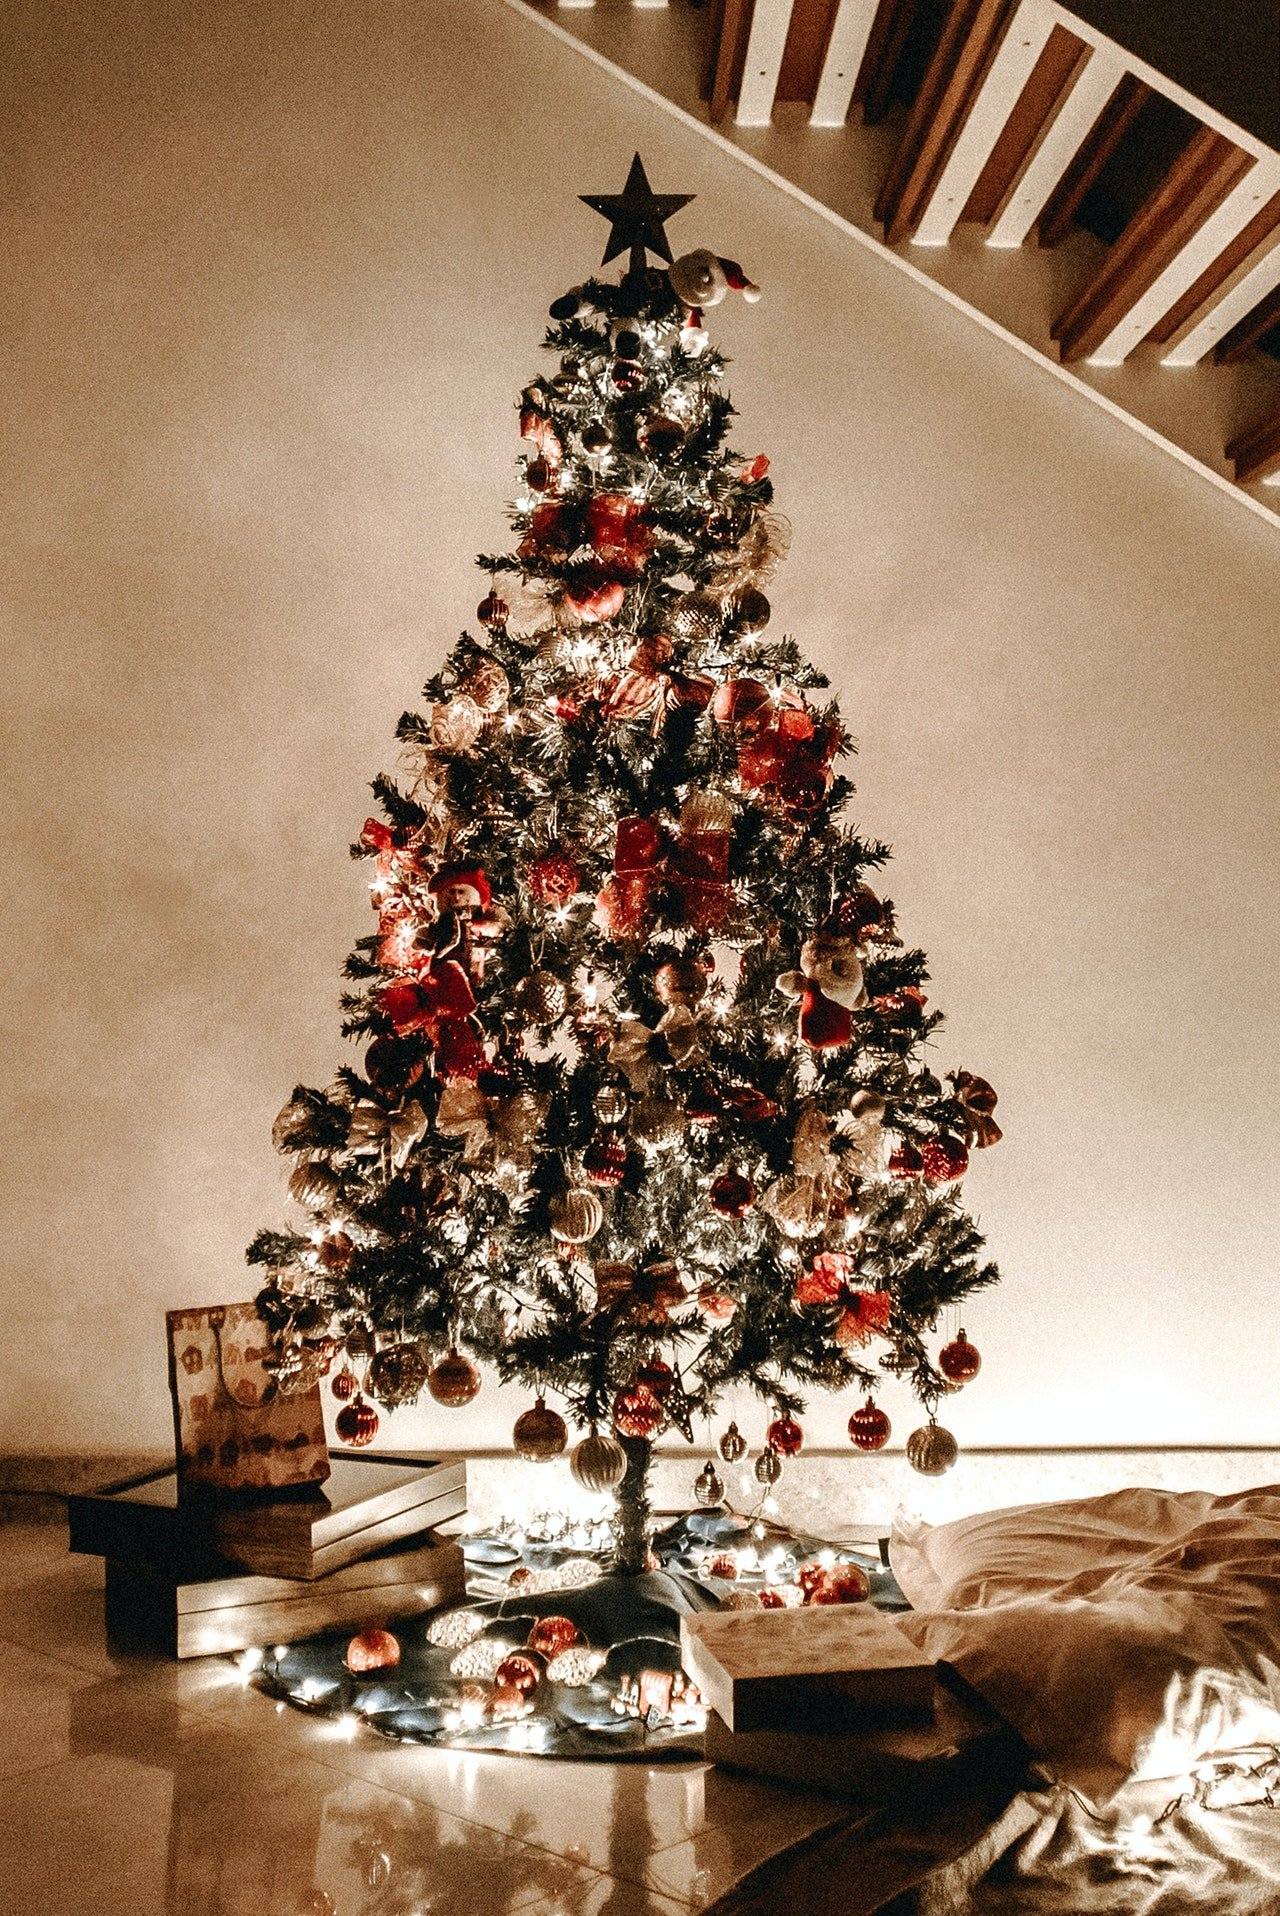 Photo of a decorated christmas tree | Photo: Pexels